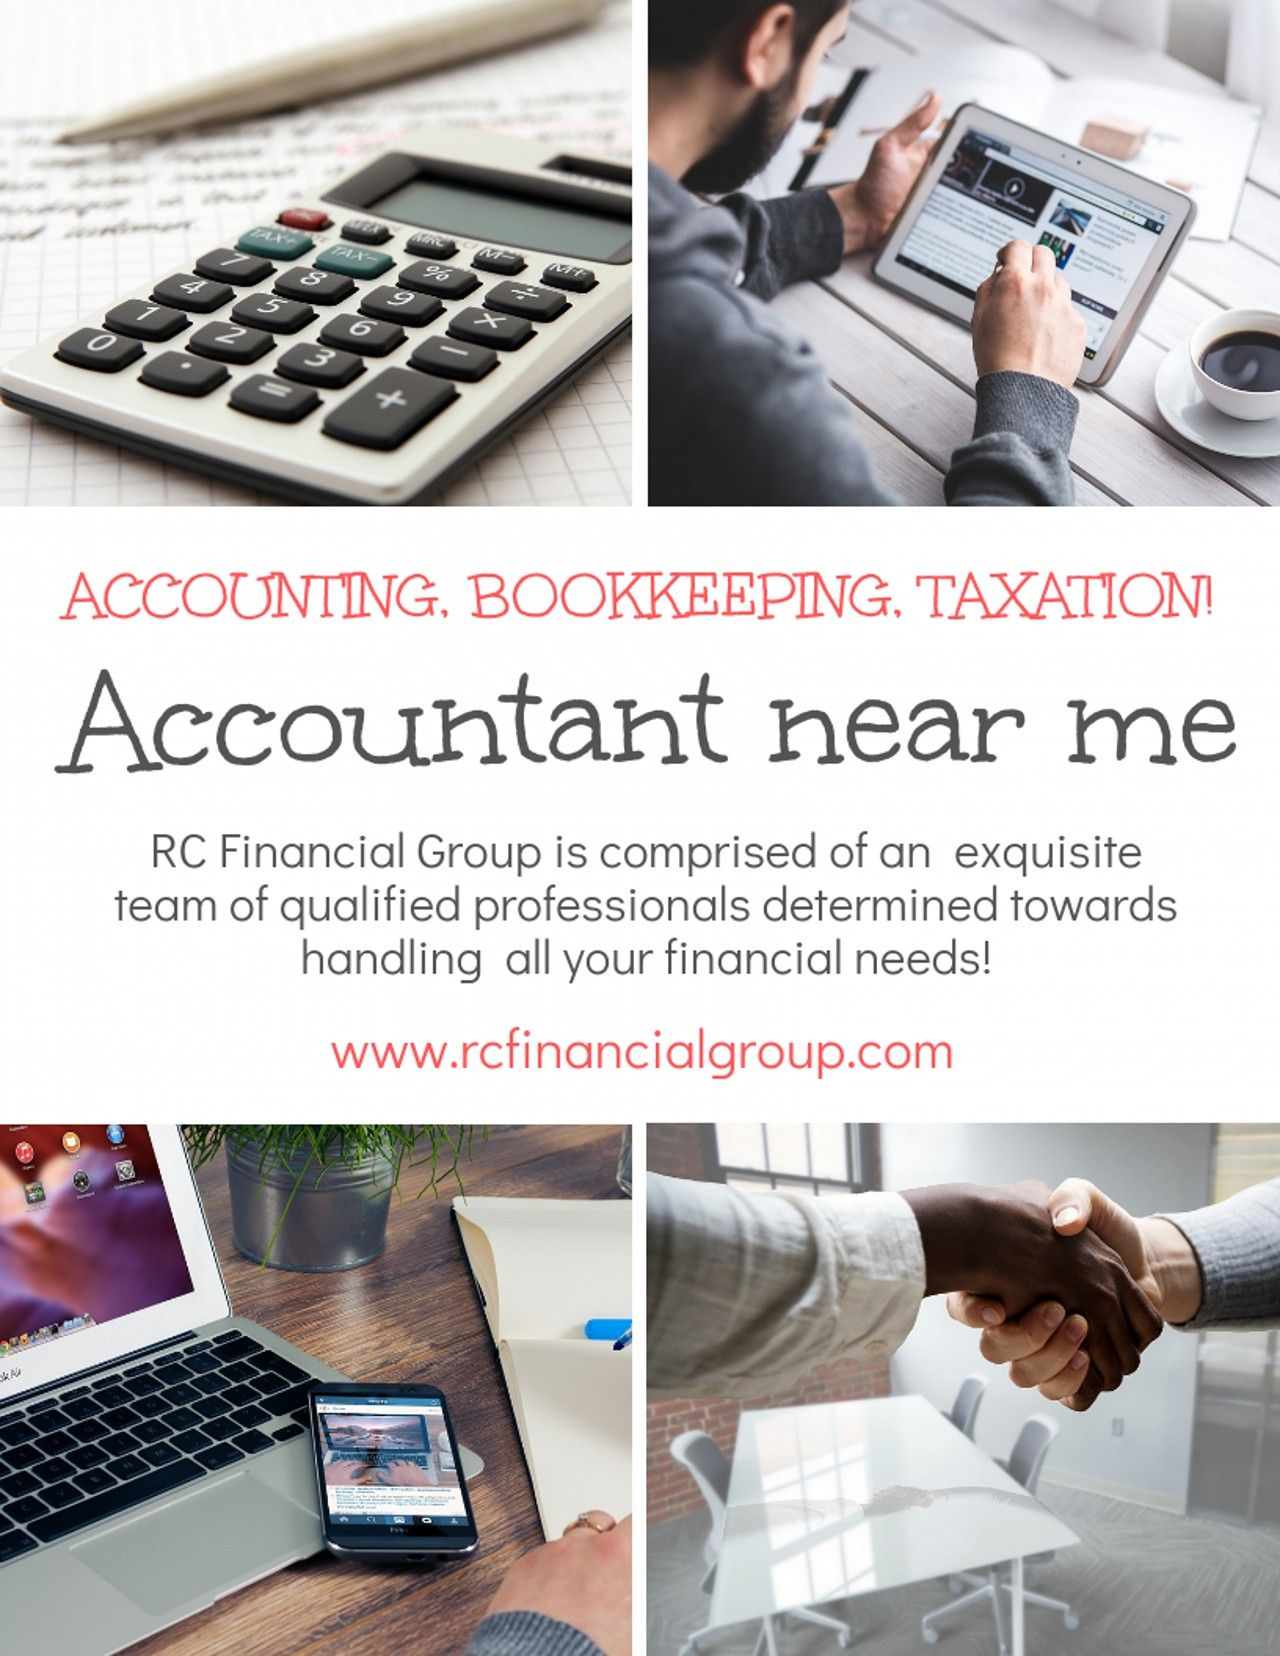 Recommended Accountants Near Me To Provide High Quality Services